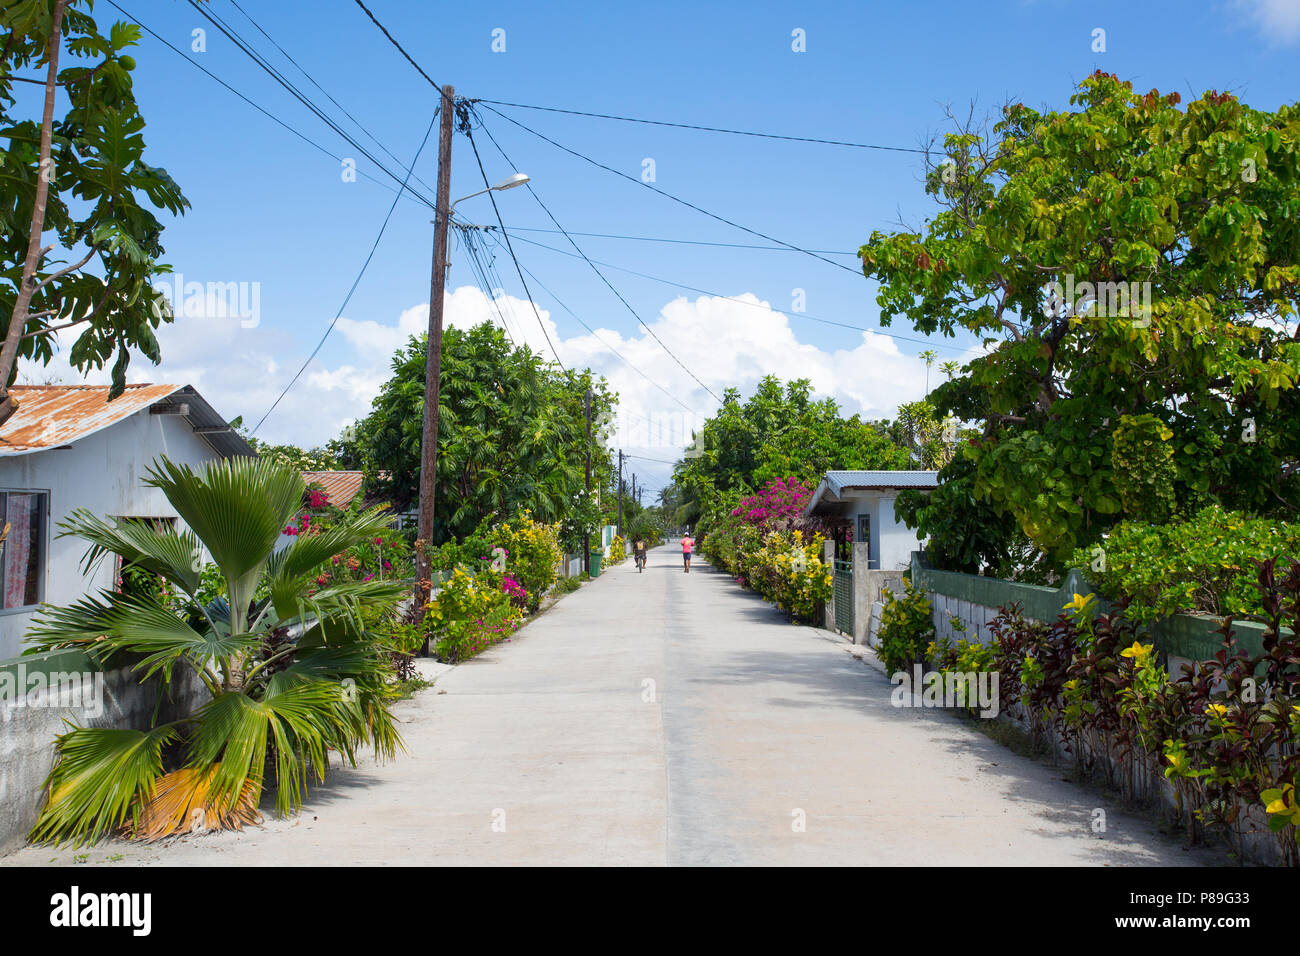 Road on Manihi Atoll - Stock Image